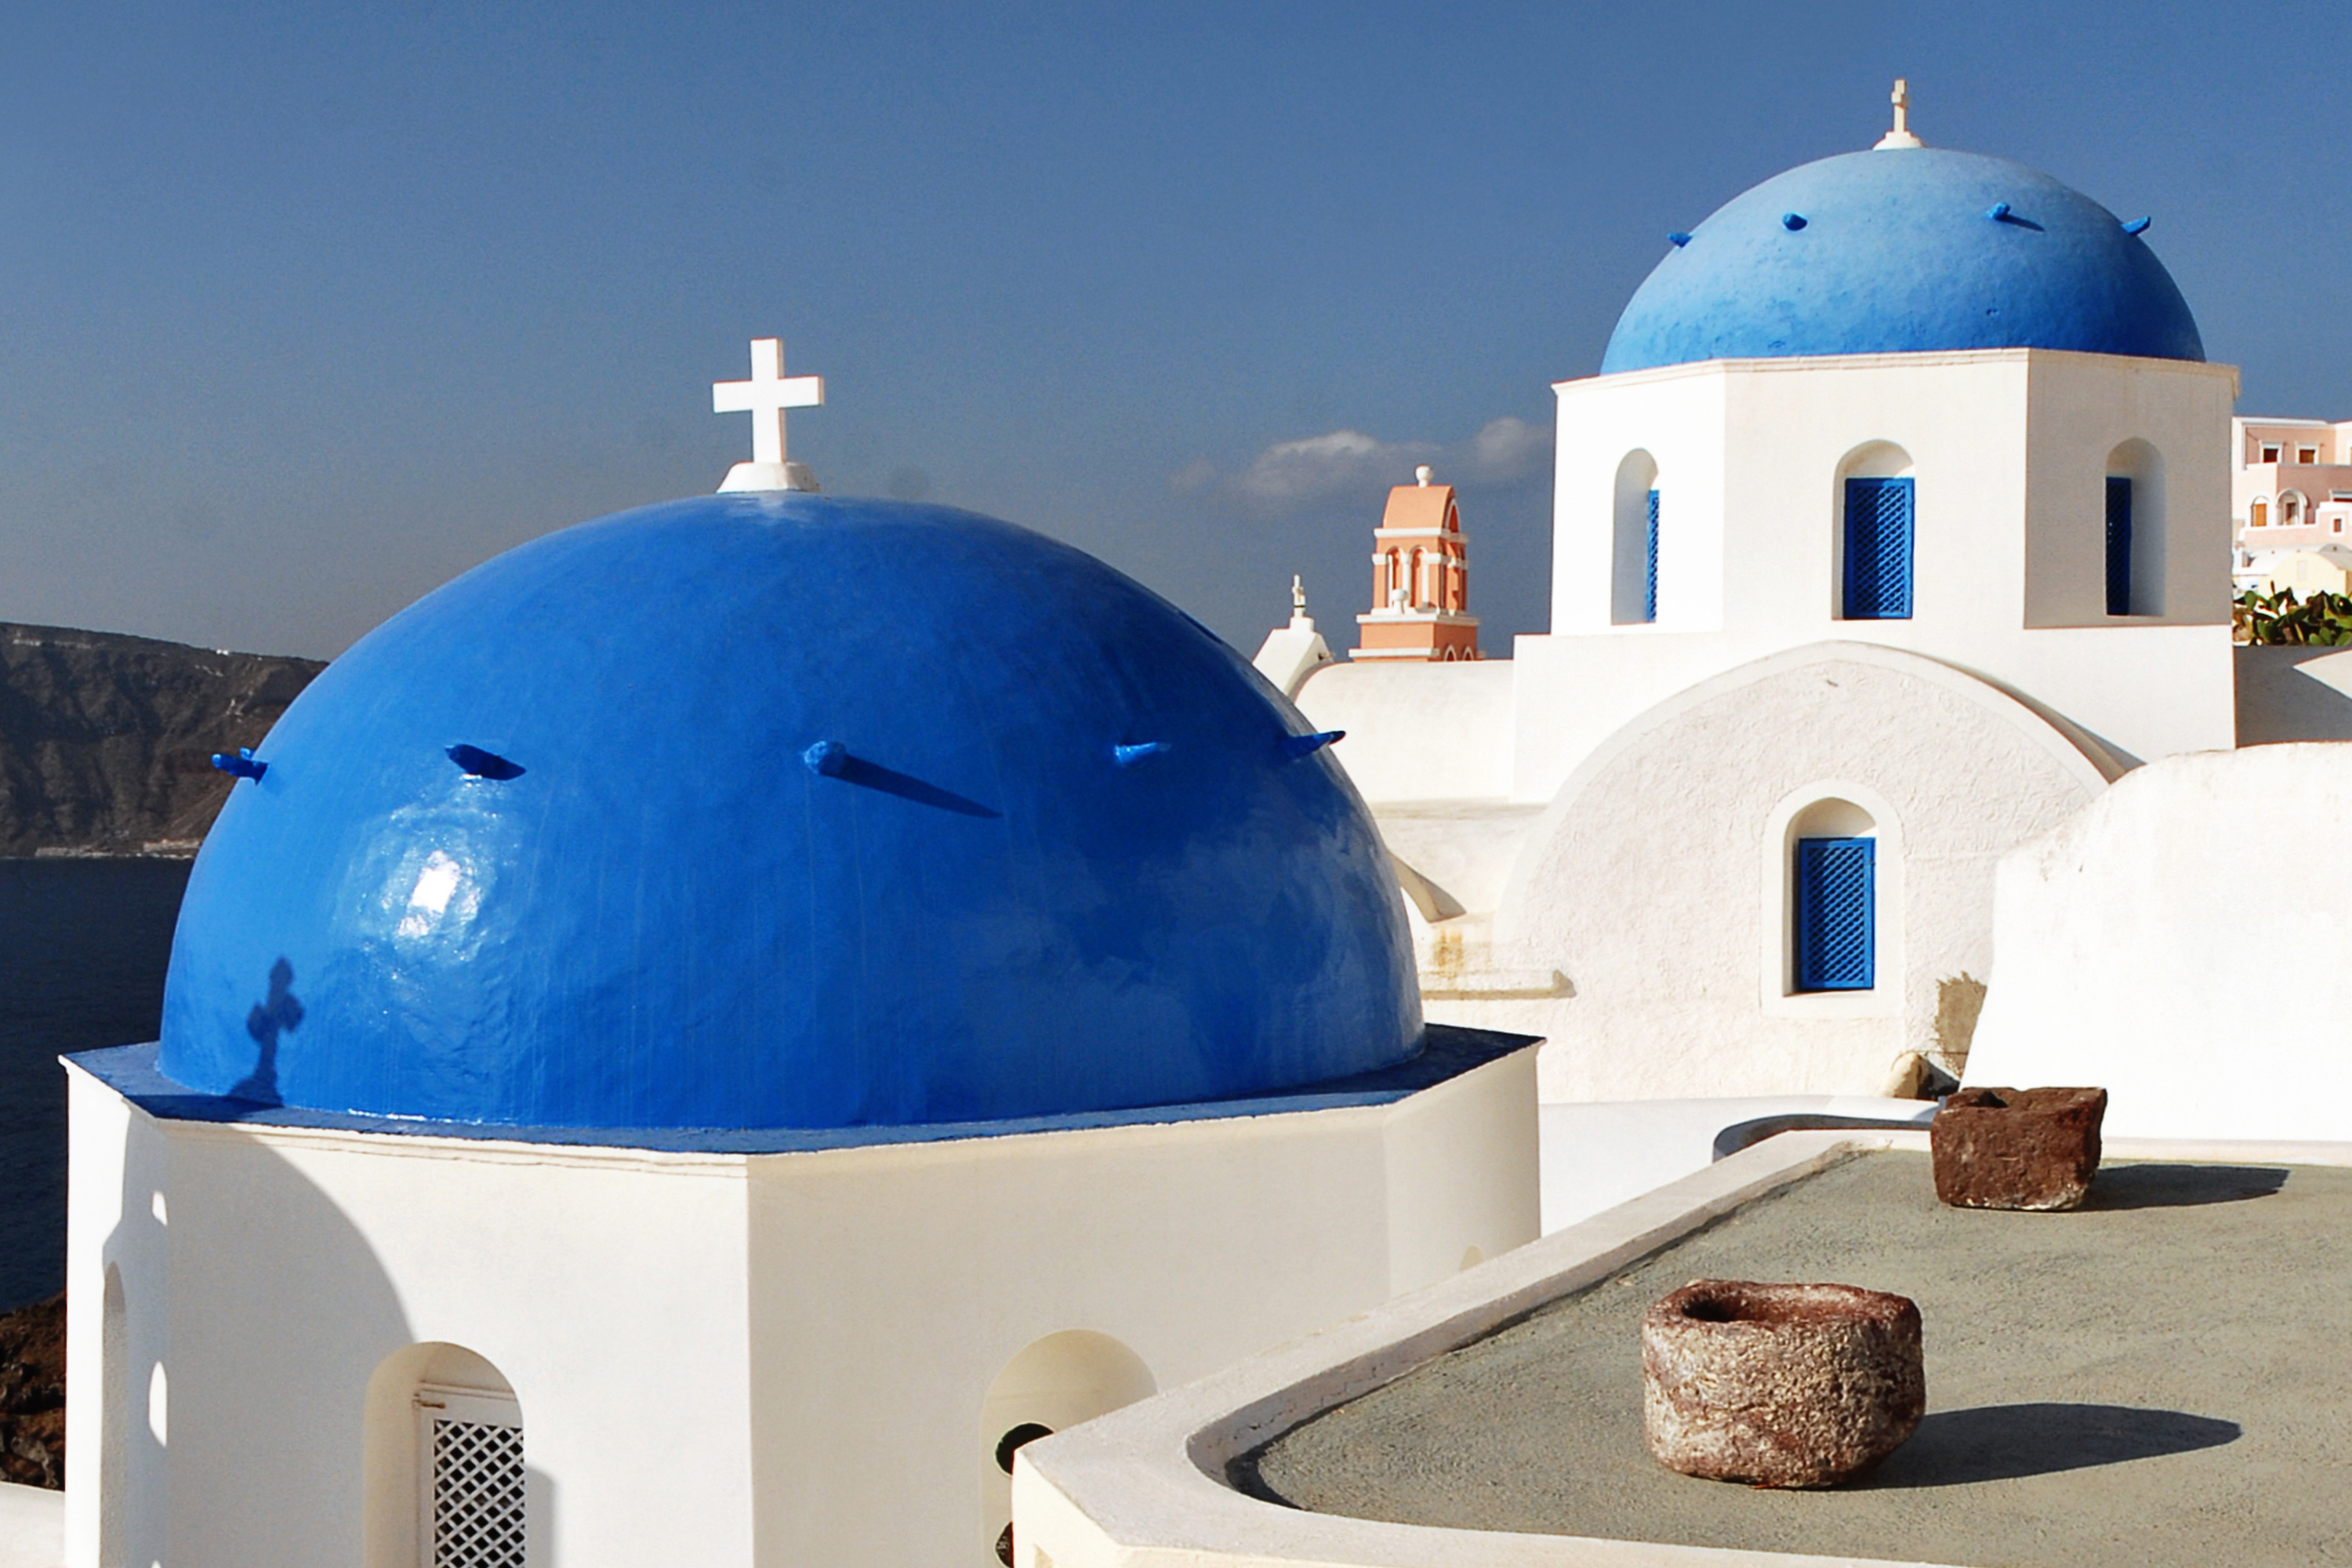 Blue Church Church With Blue Domes Images